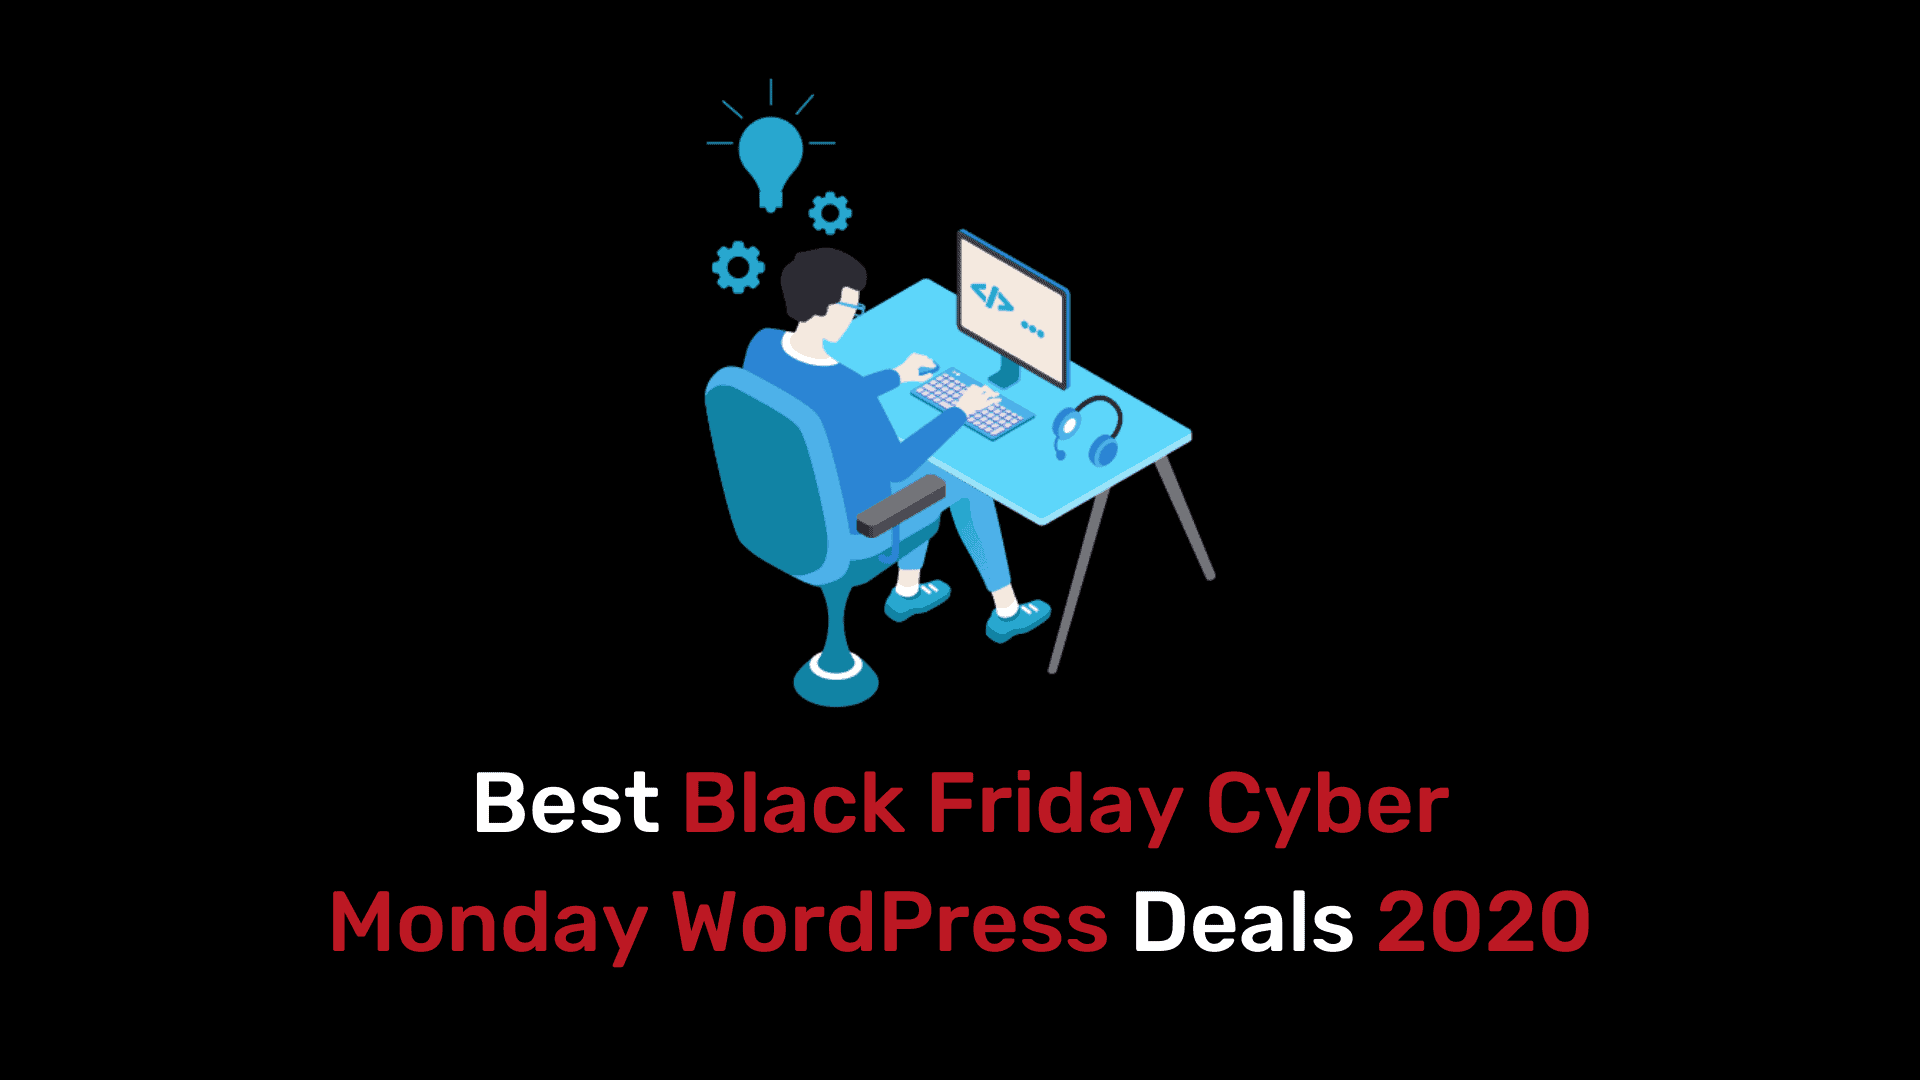 Best Black Friday Cyber Monday Deals & Discounts